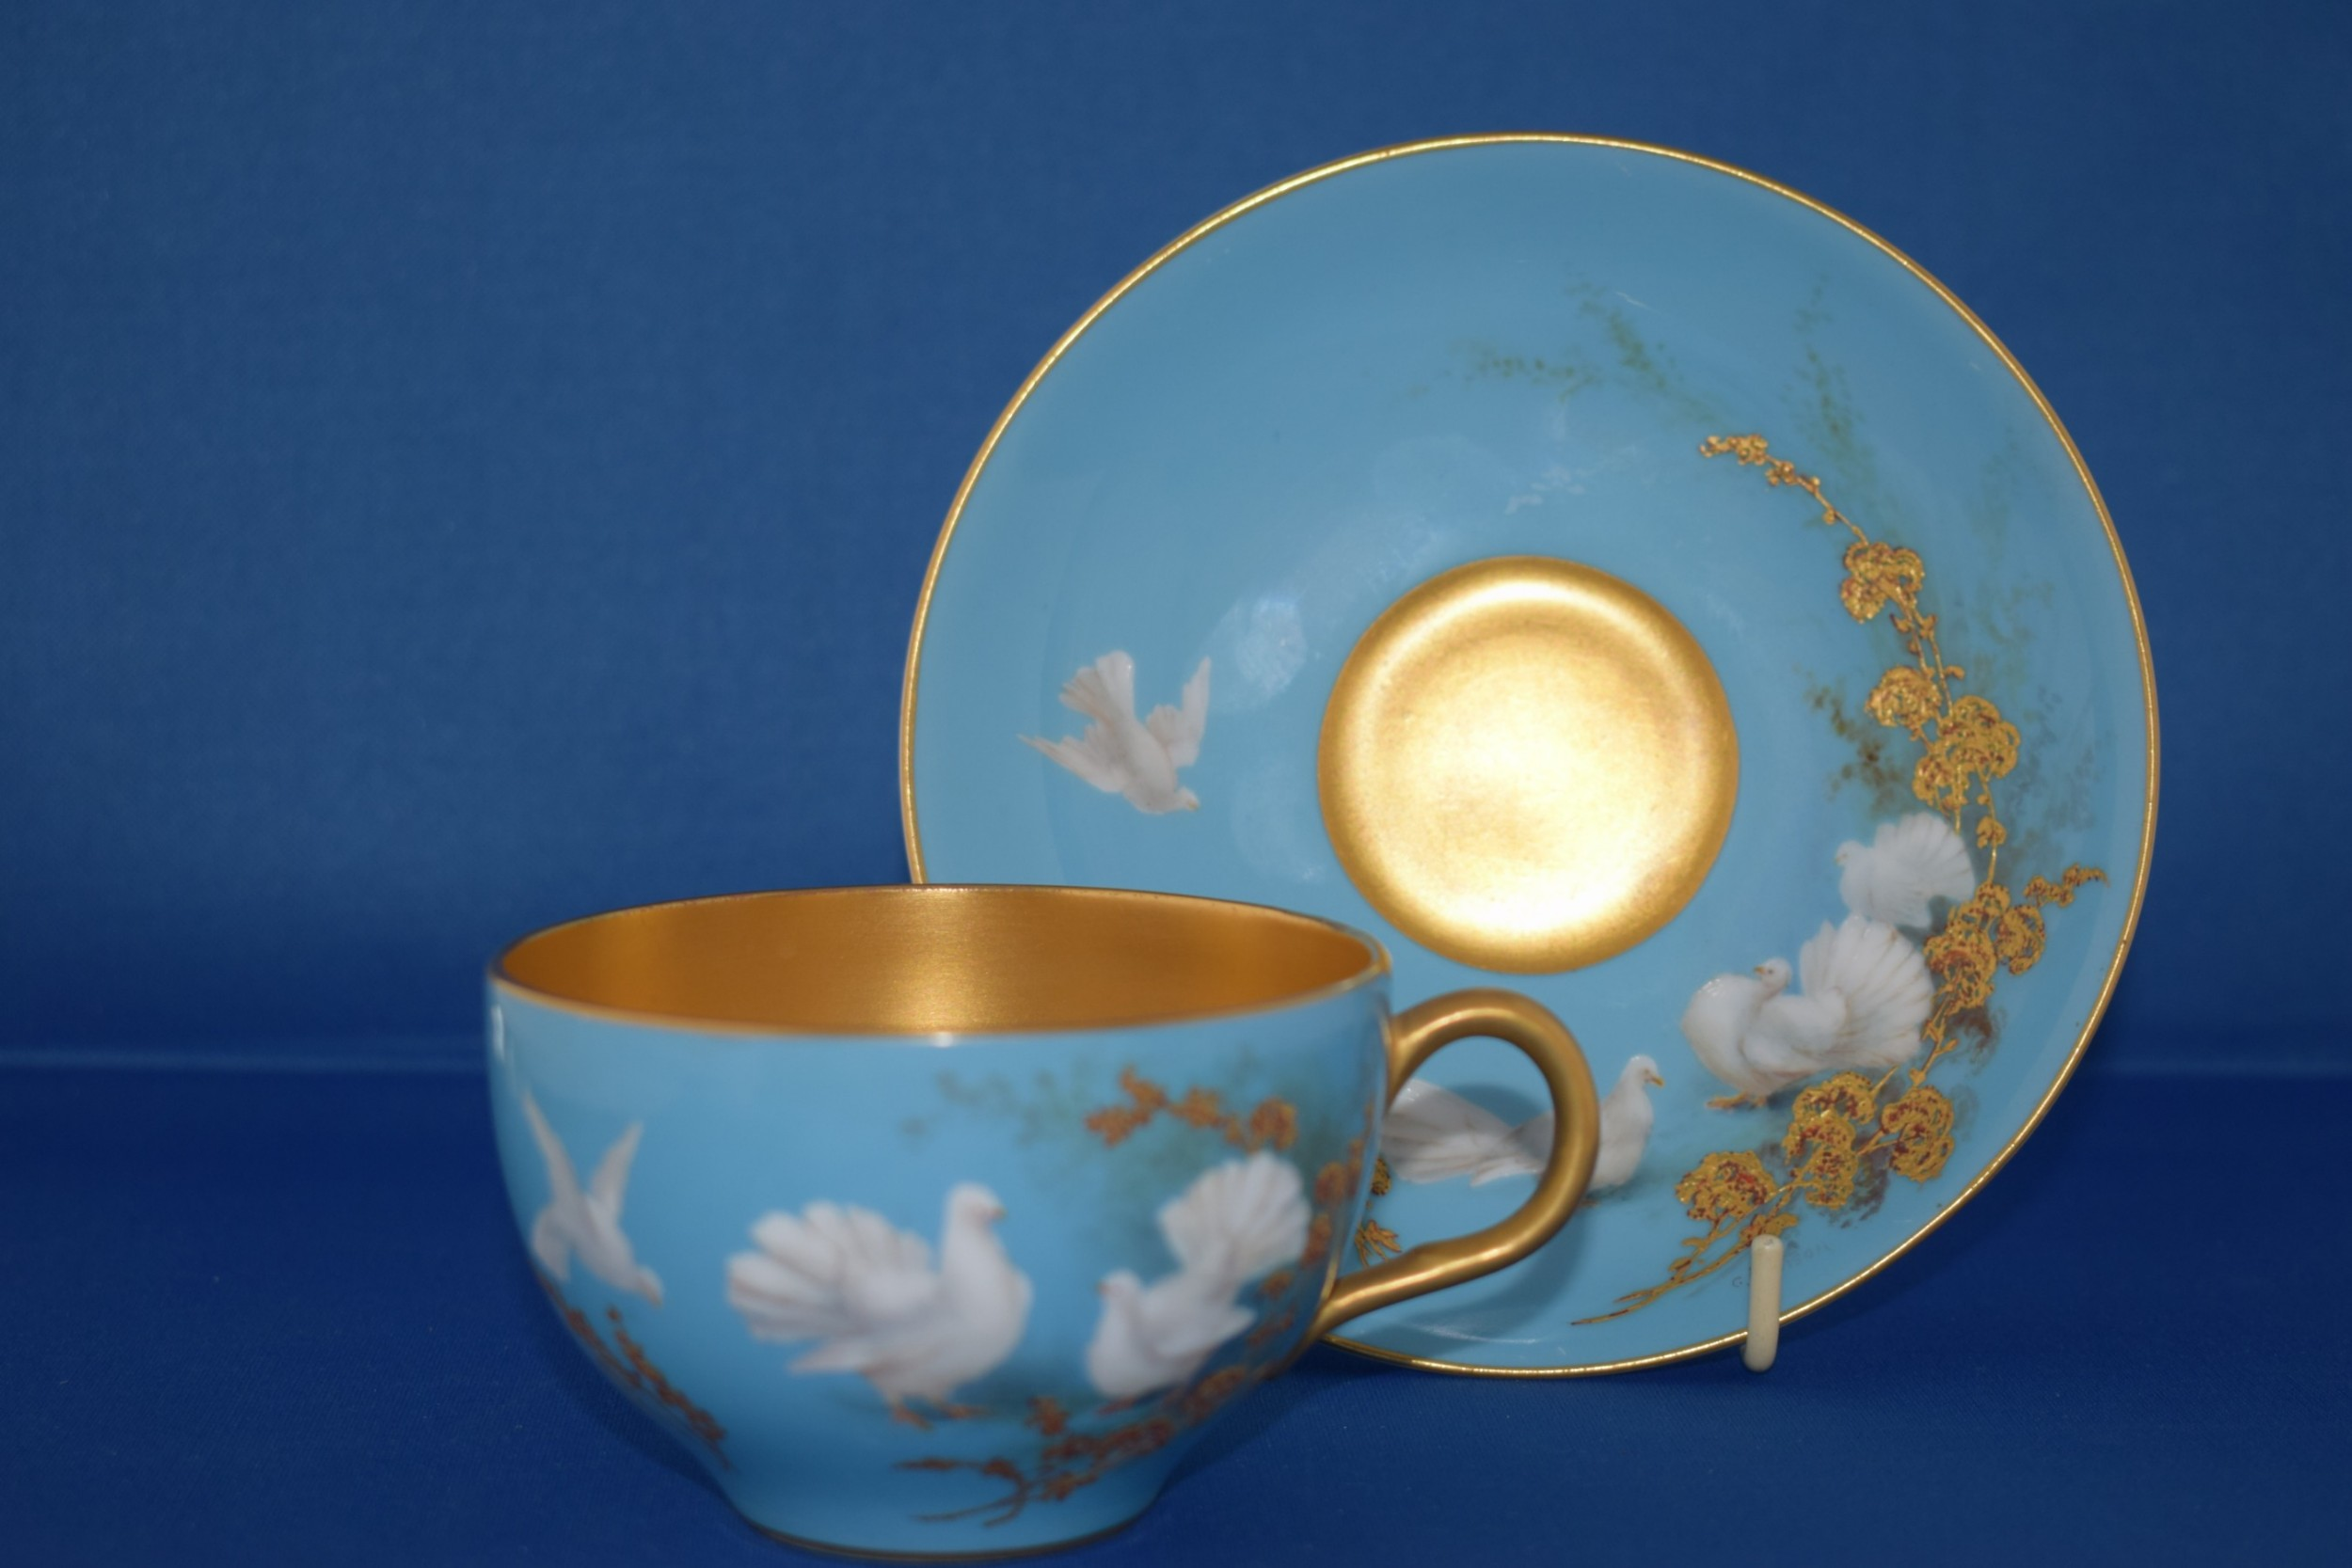 royal worcester artist signed cup and saucer